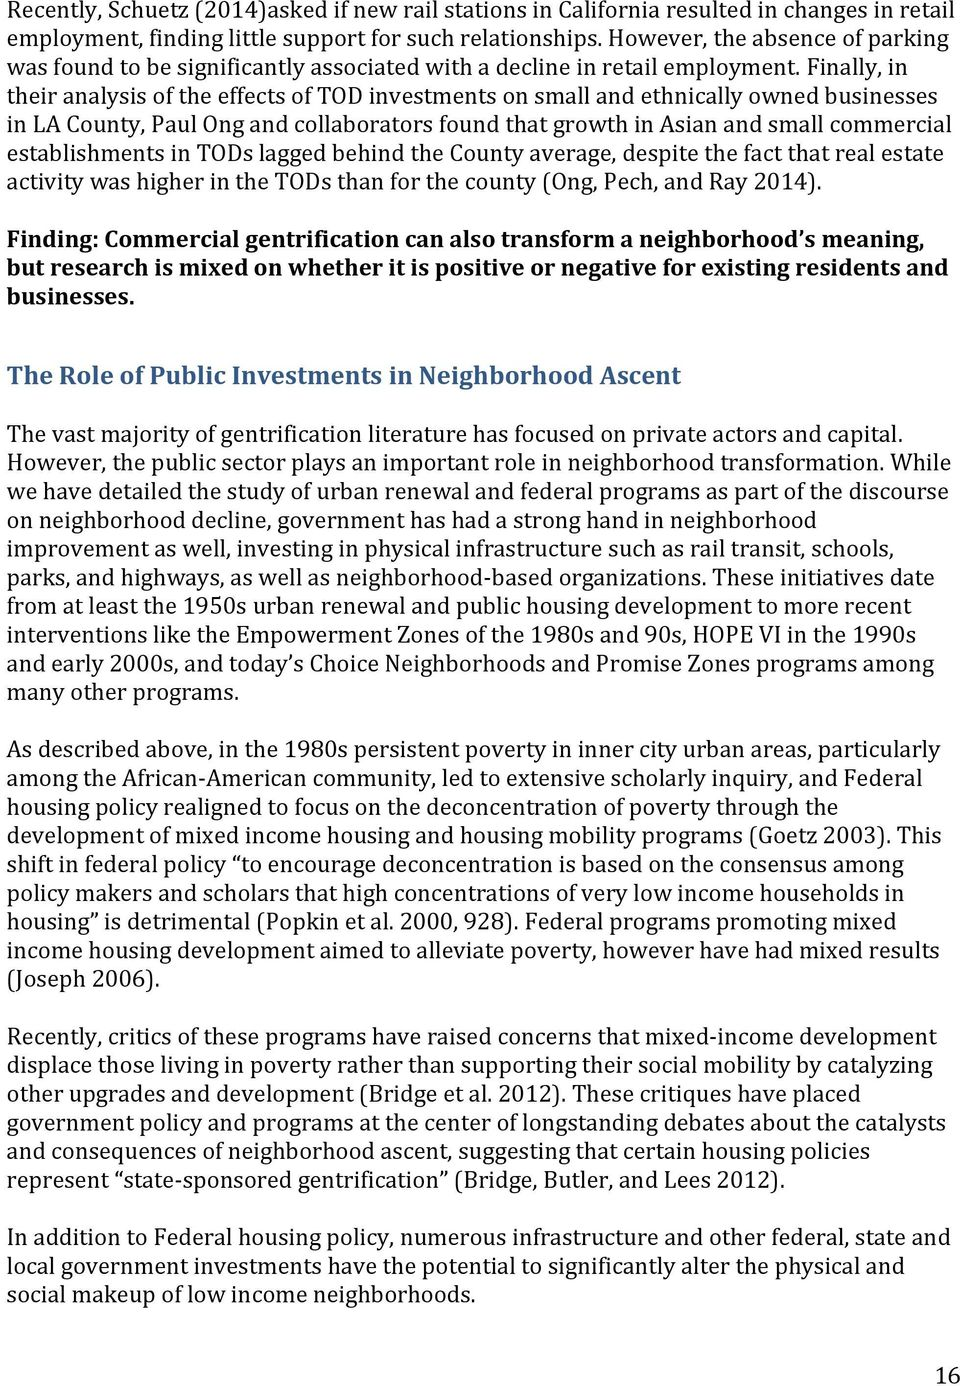 Finally, in their analysis of the effects of TOD investments on small and ethnically owned businesses in LA County, Paul Ong and collaborators found that growth in Asian and small commercial